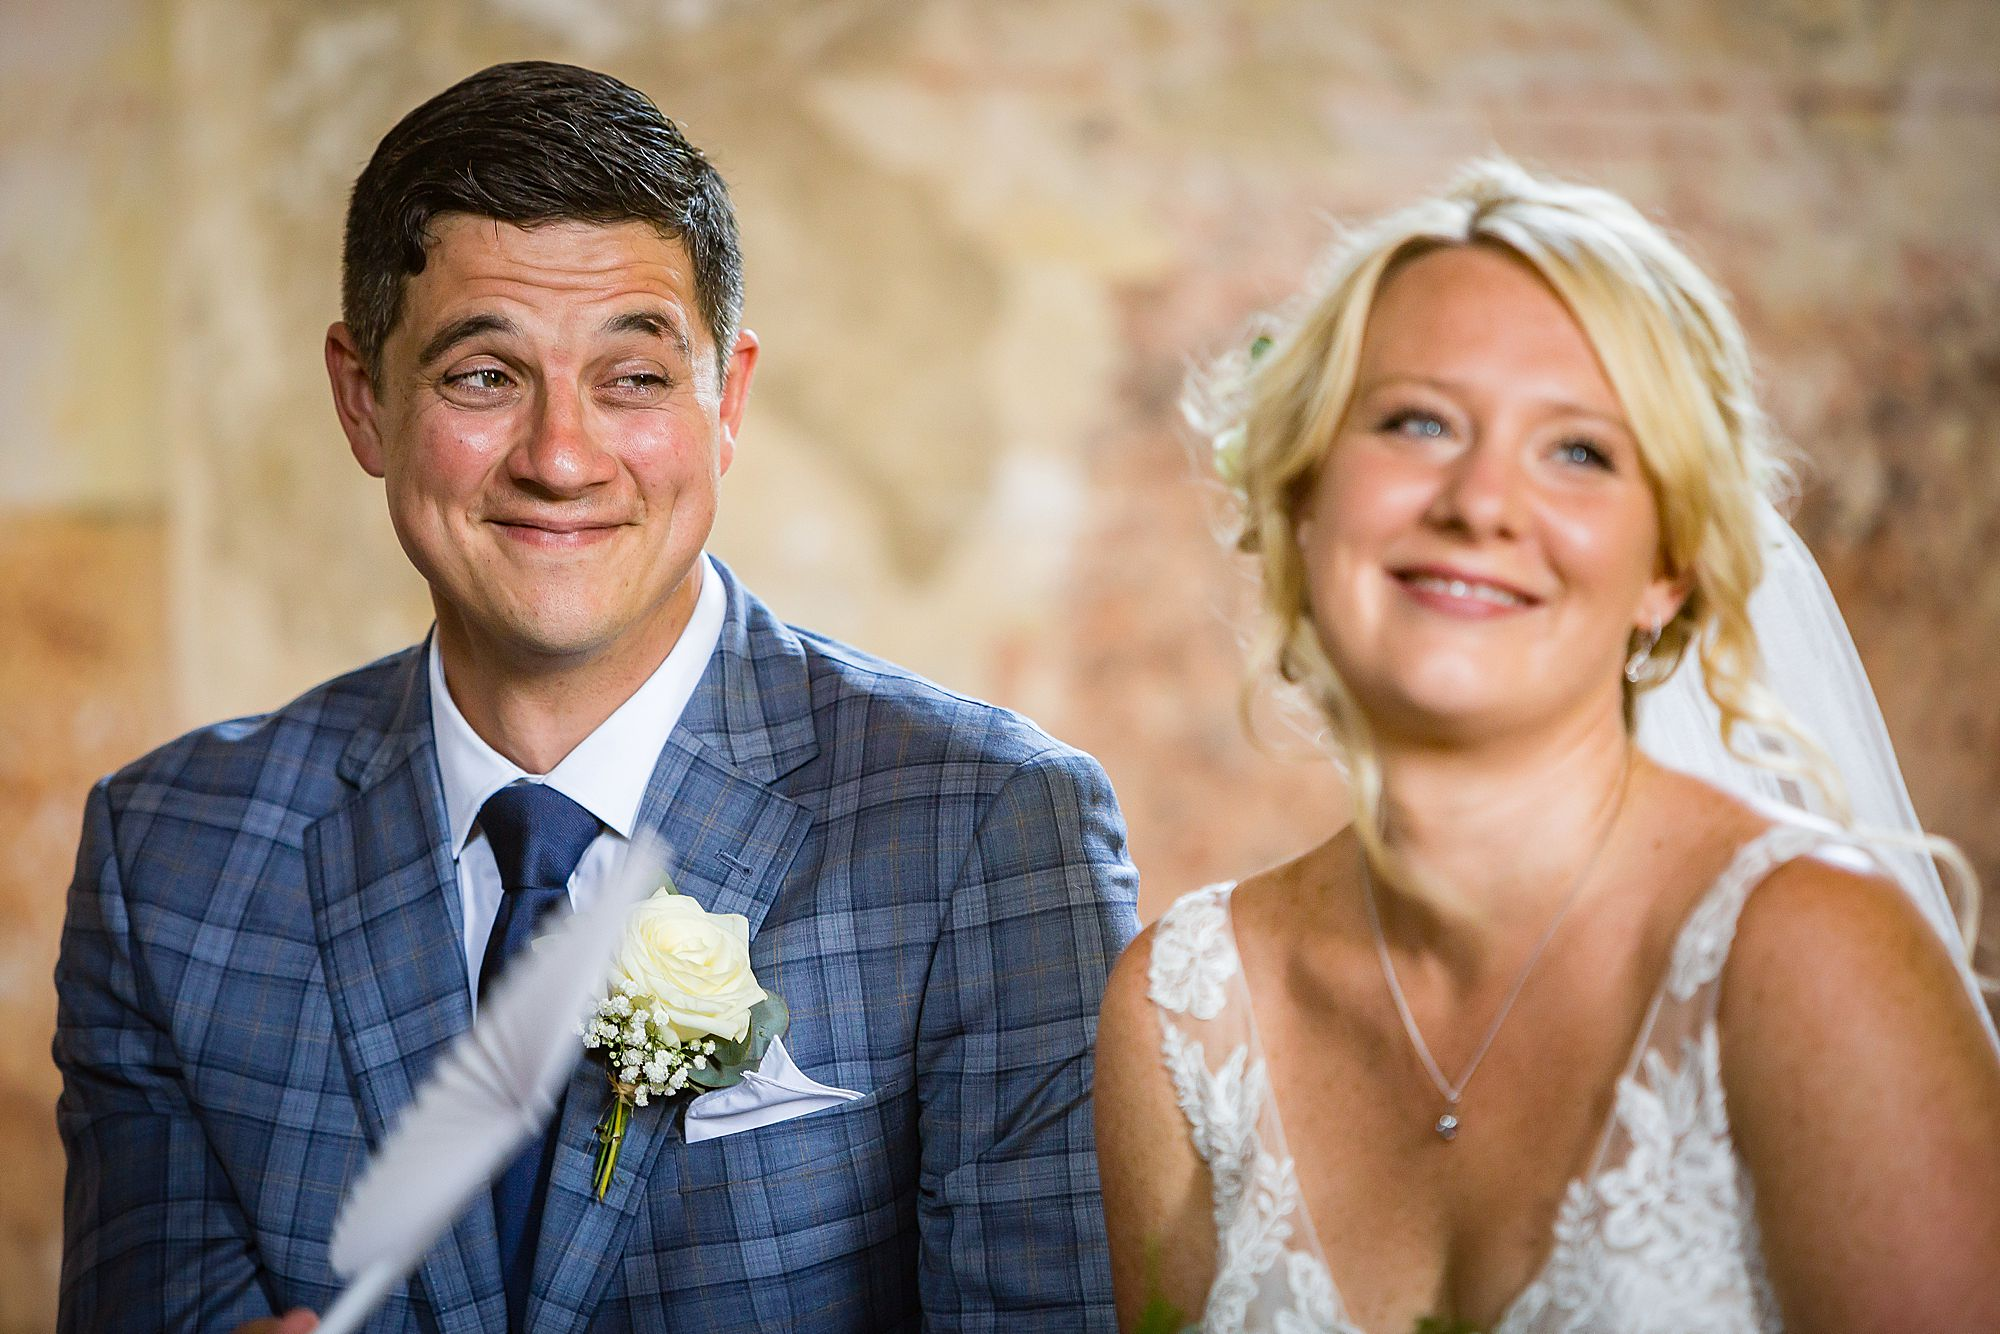 groom smiles at bride.